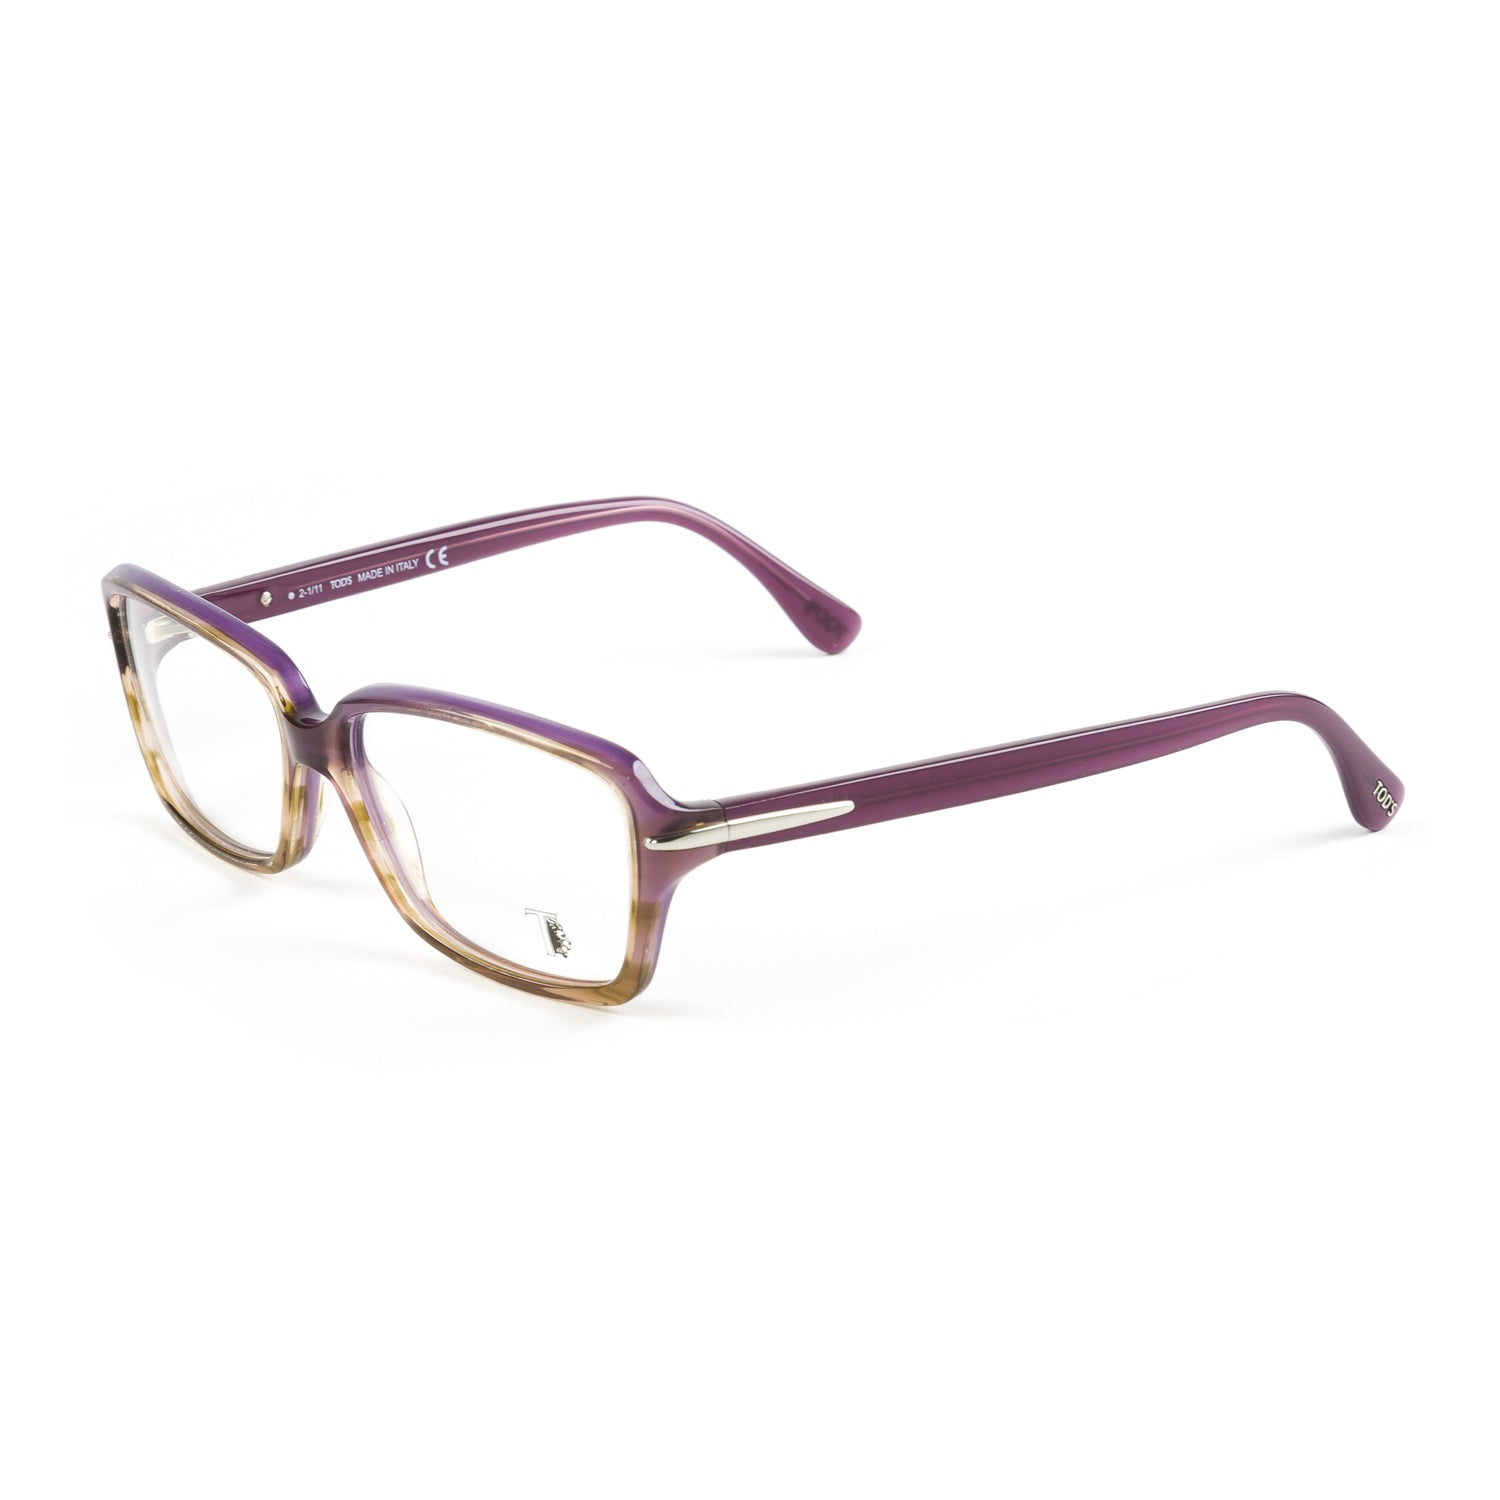 8ec2d9423b TOD S Purple Ombre Rectangular Eyeglass Frames TO5047-083 NEW – Walk Into  Fashion